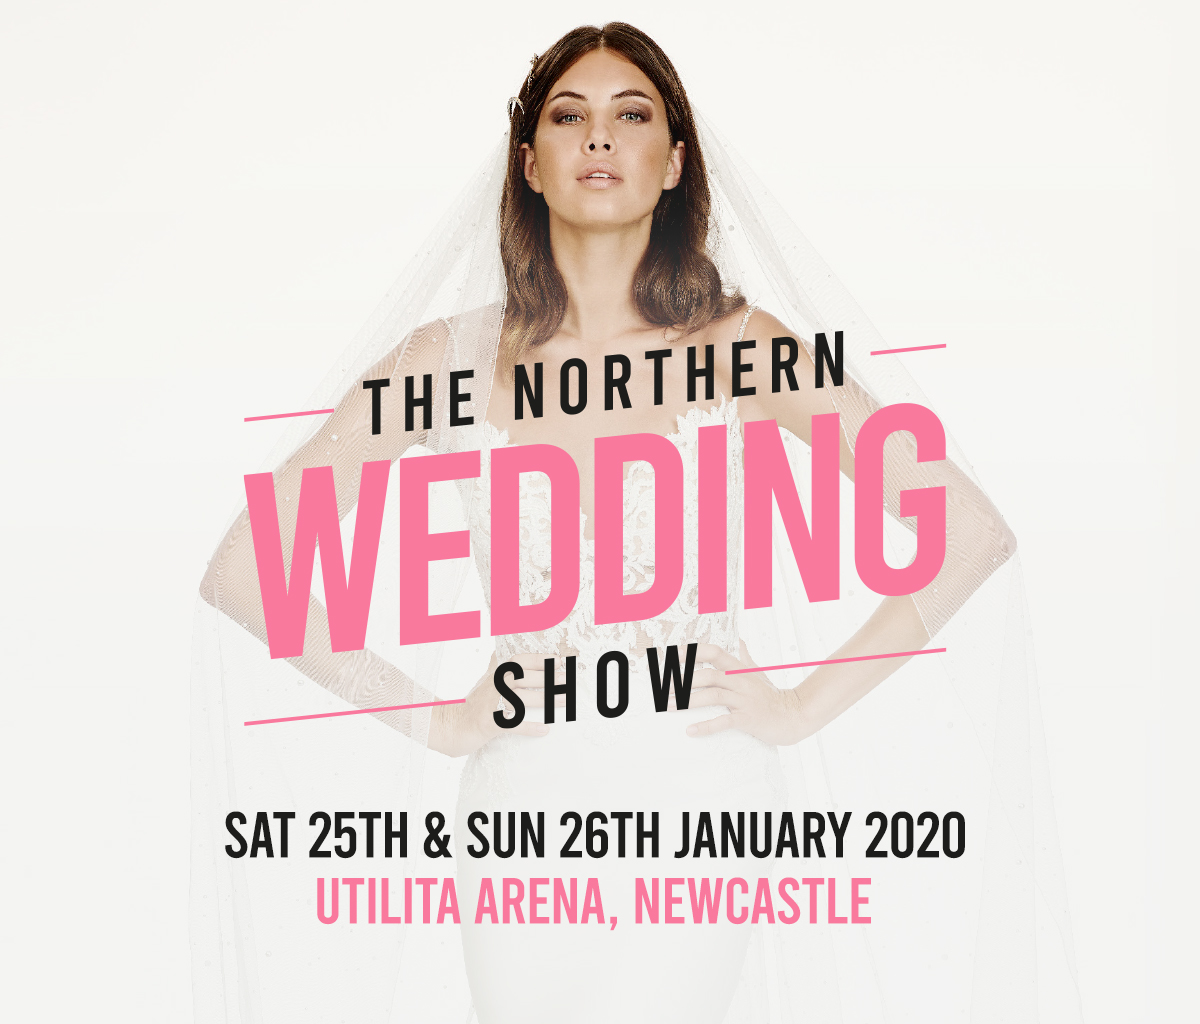 The Northern Wedding Show - Saturday 25th and Sunday 26th January 2020